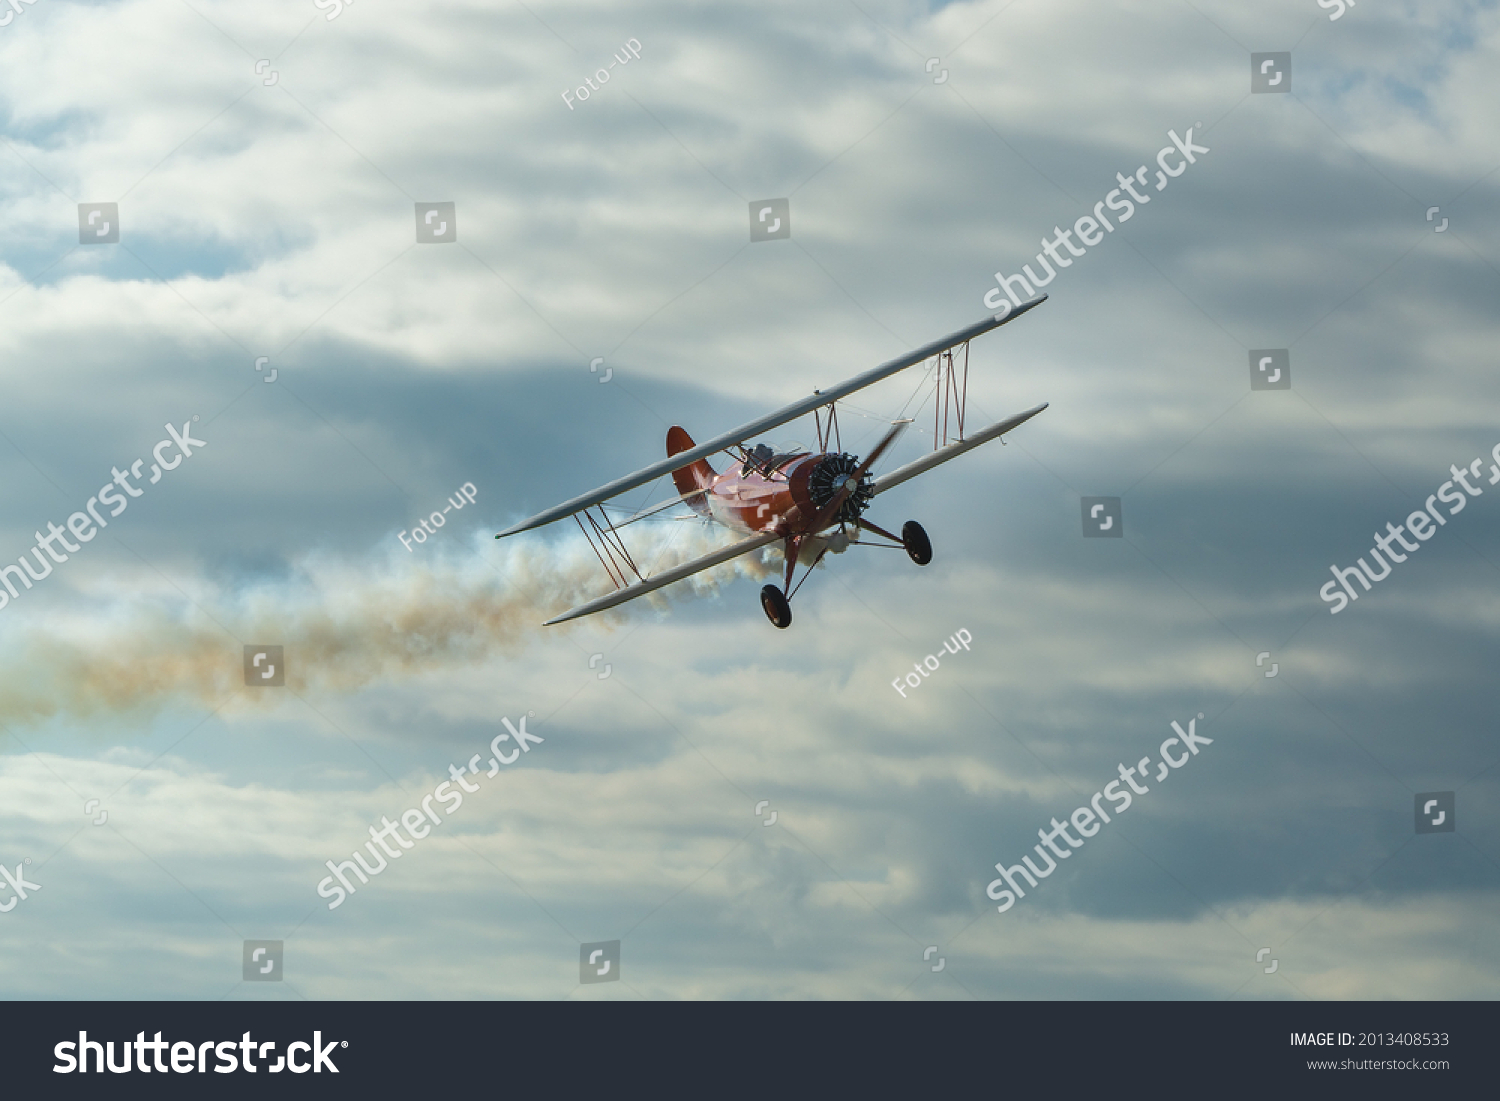 The historic red plane flies against the background of clumping clouds. #2013408533